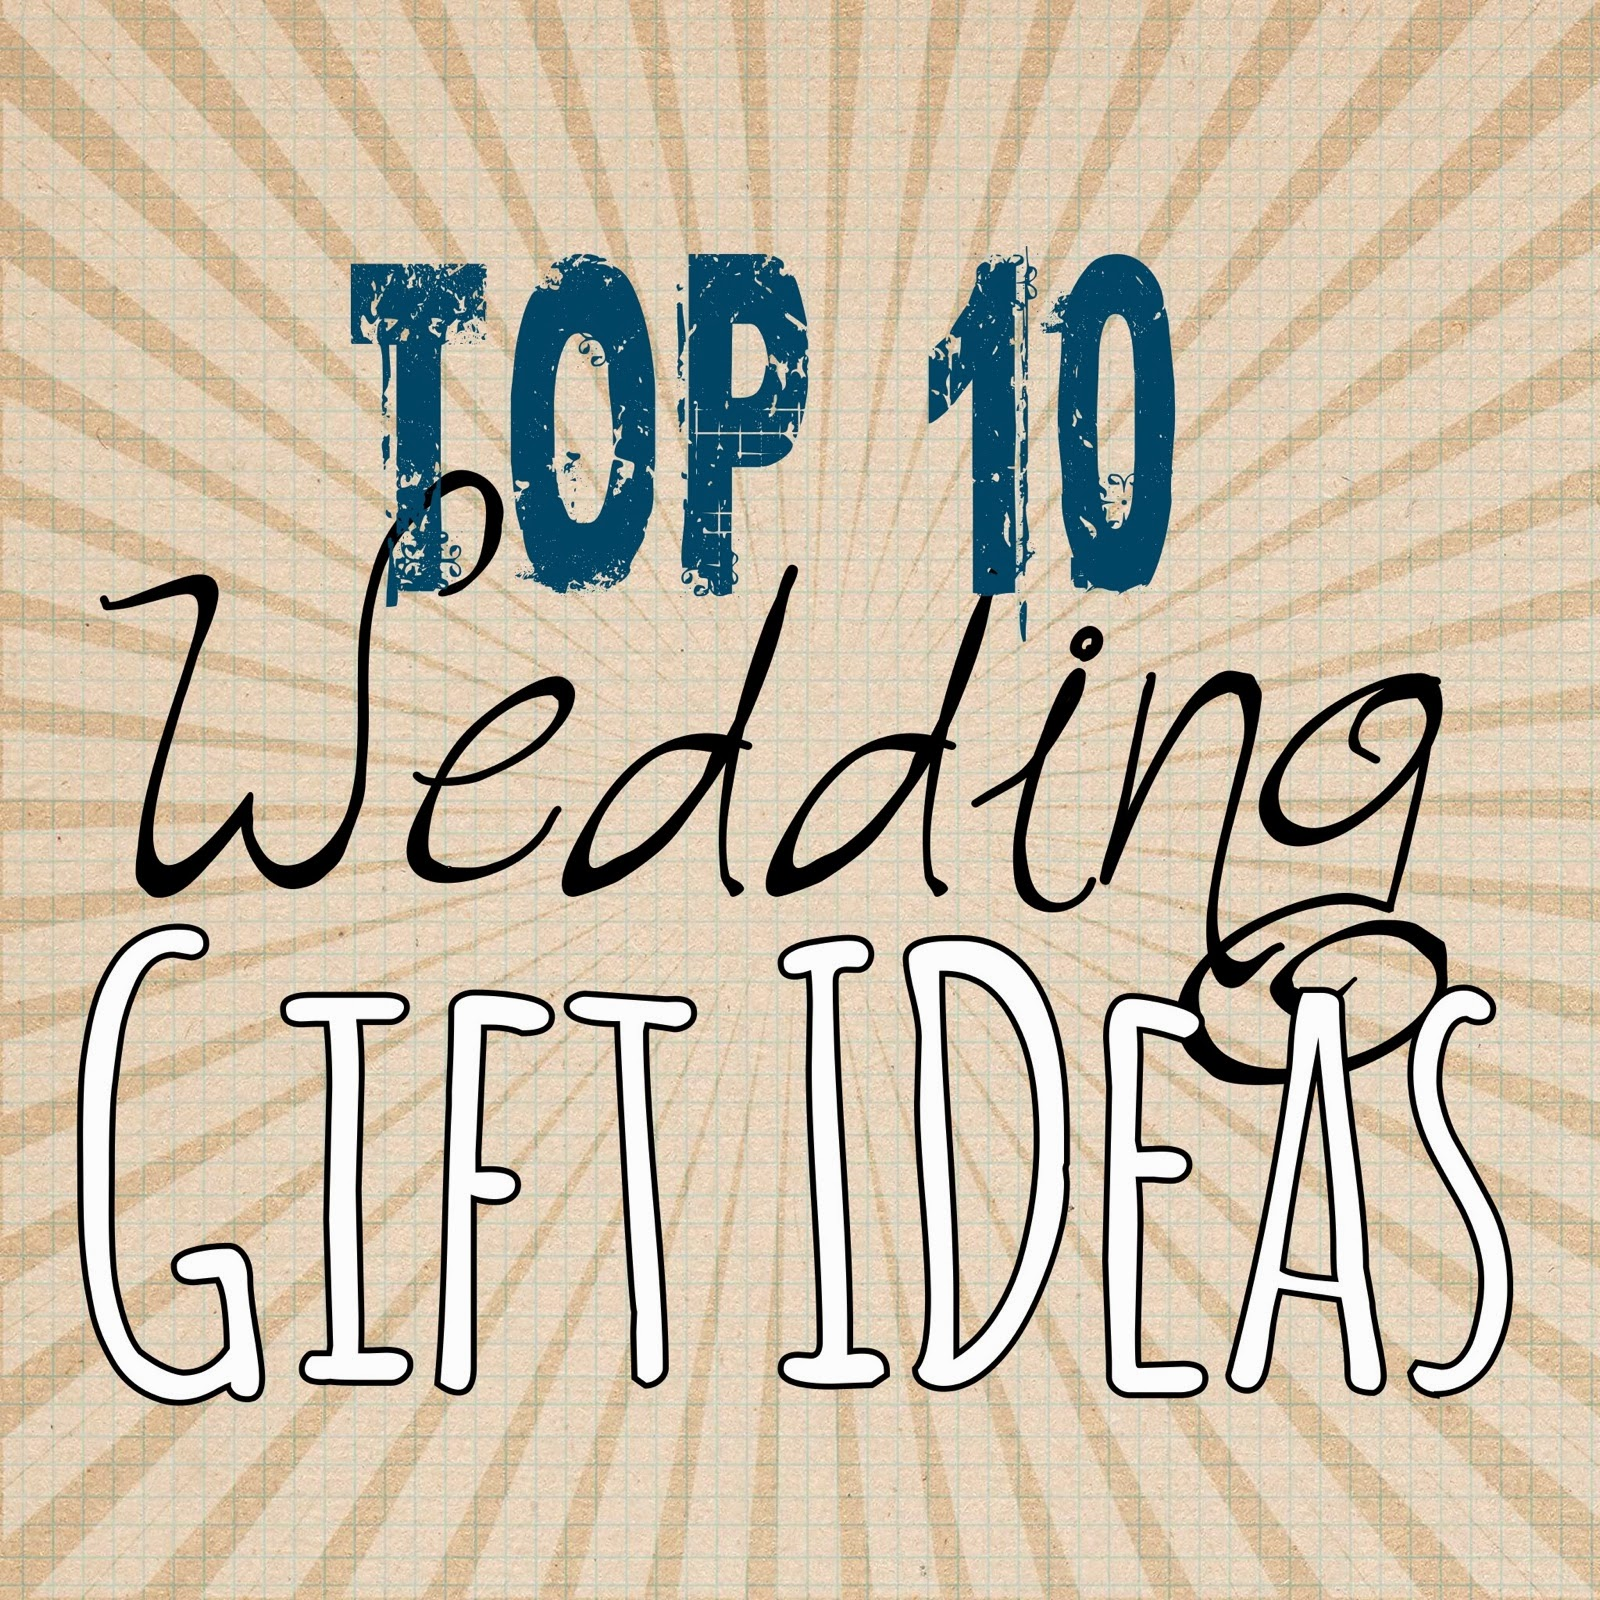 Wedding Gifts For Active Couples : Top 10 Wedding Gift Ideas - Lou Lou Girls